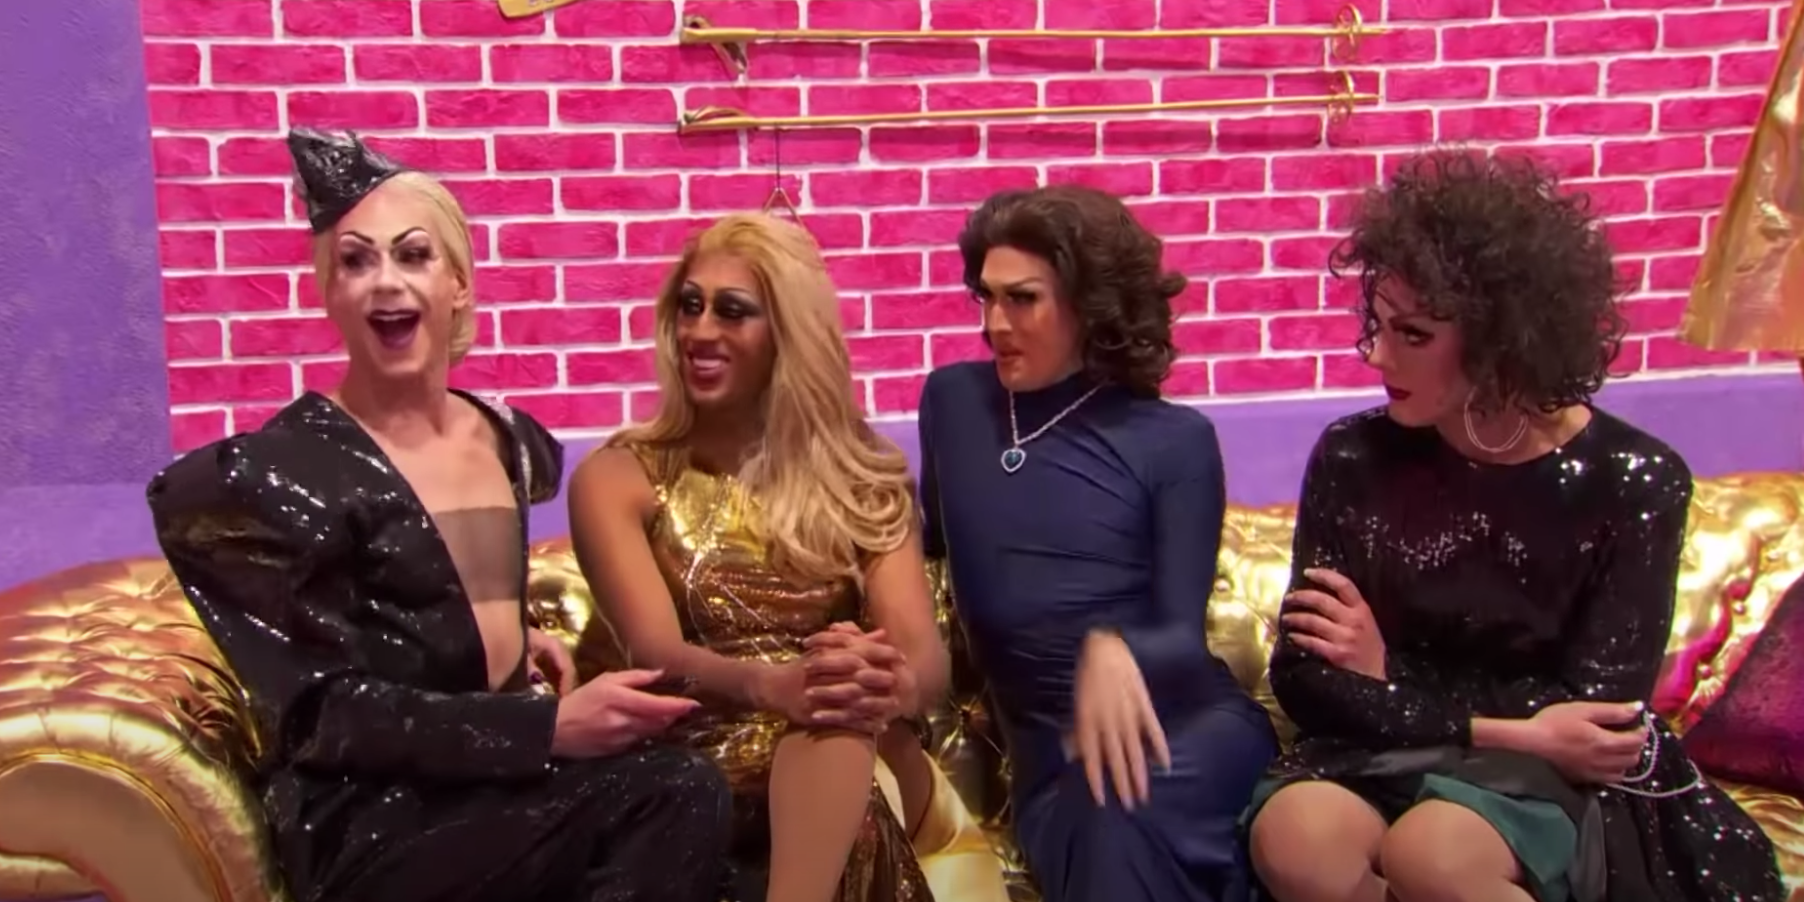 """RuPaul's Drag Race"" cast sits together on a couch and shares a laugh."